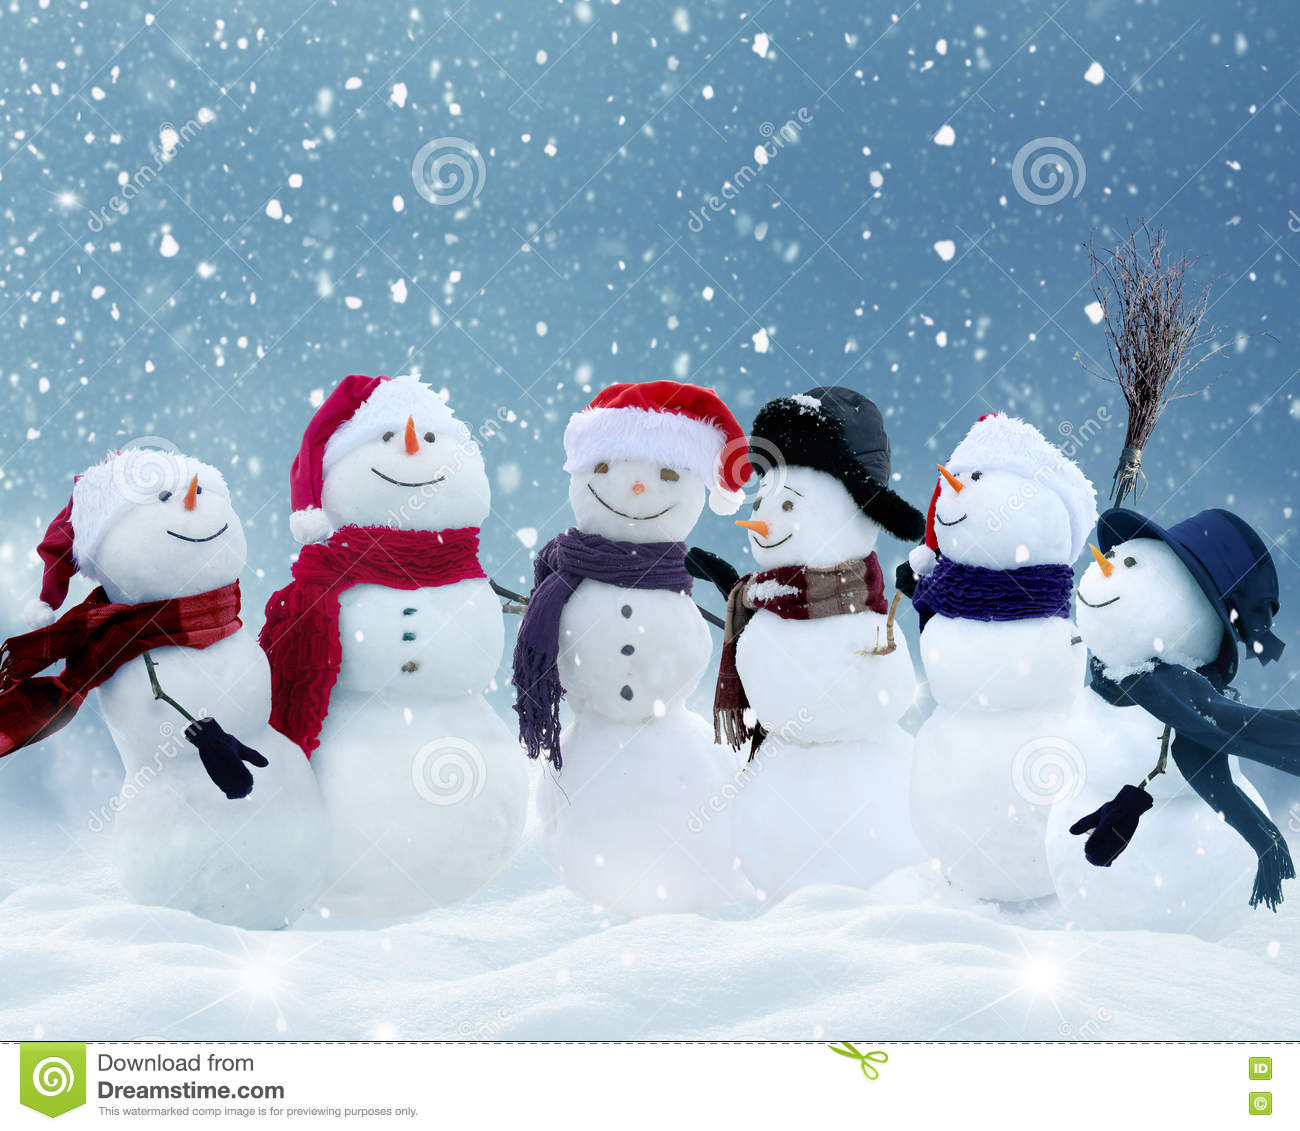 Snowmen Standing In Winter Christmas Landscape Stock Image